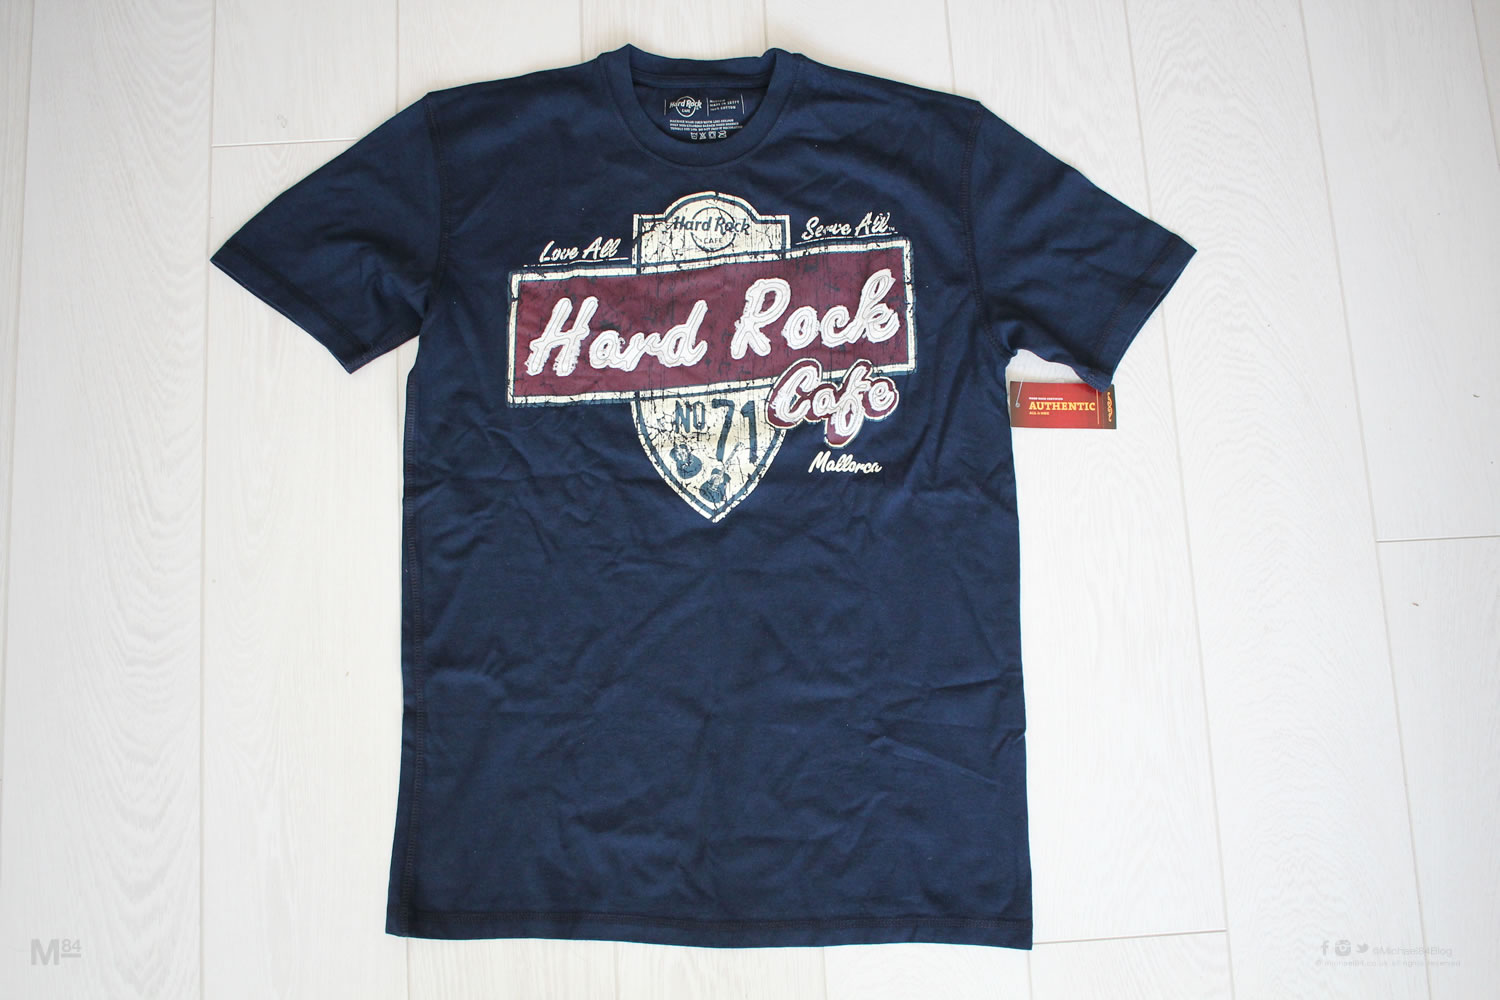 hard rock caf mallorca t shirt michael 84. Black Bedroom Furniture Sets. Home Design Ideas